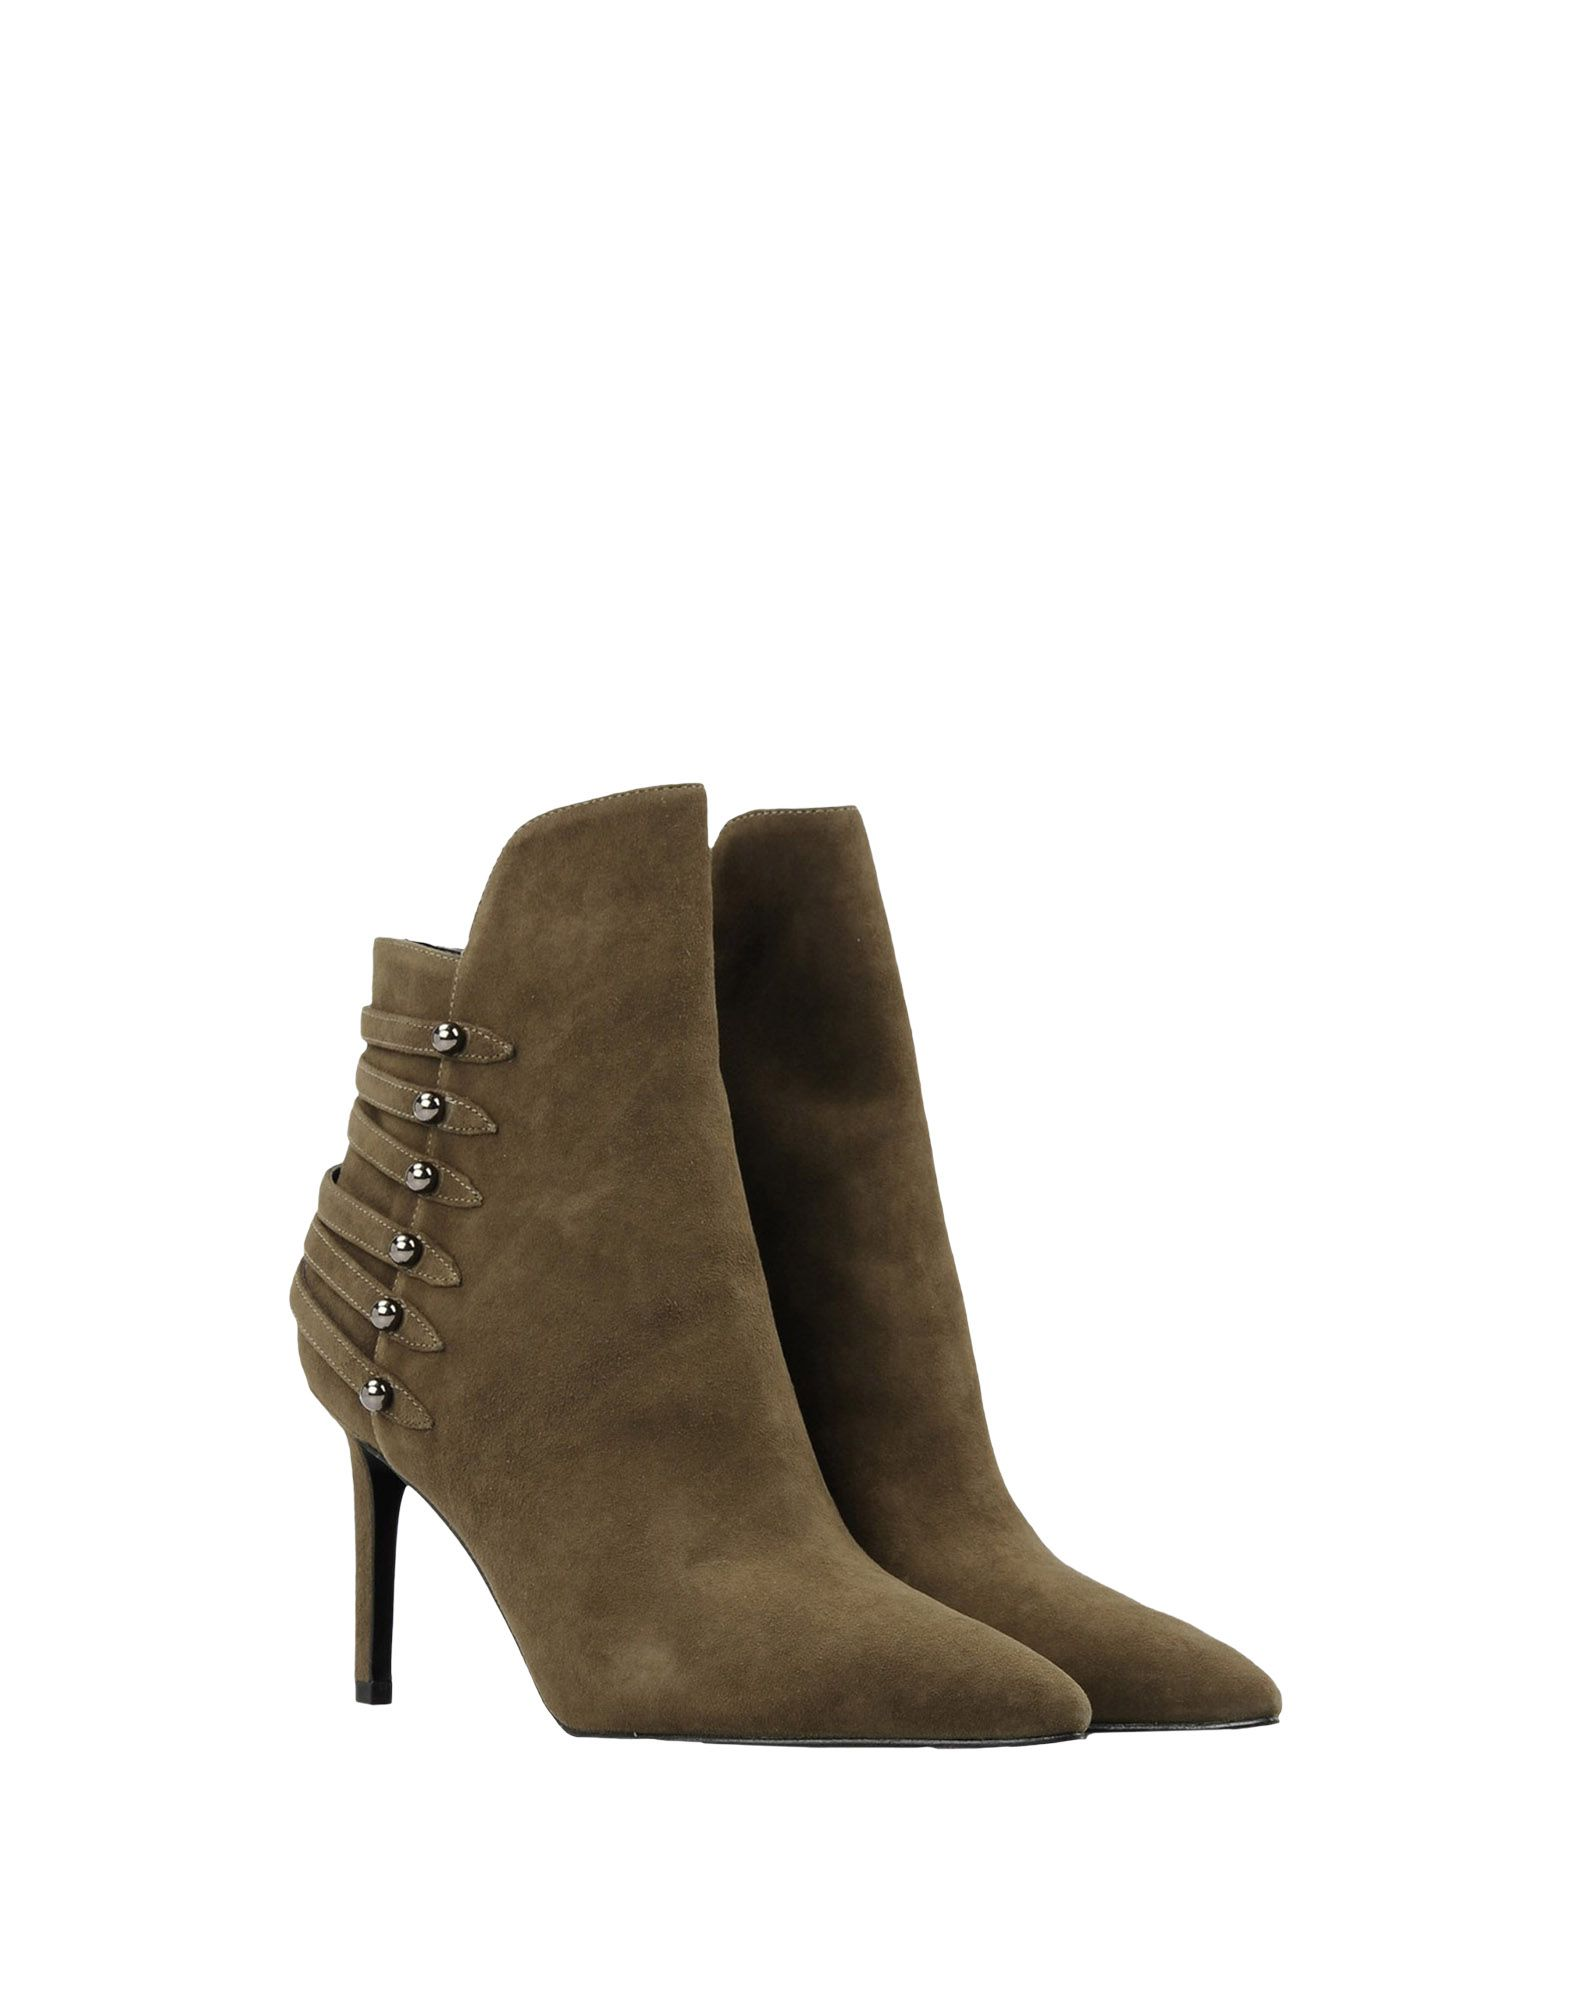 Kendall + Kylie Ankle Boot - Ankle Women Kendall + Kylie Ankle - Boots online on  Australia - 11324210IF 928d15